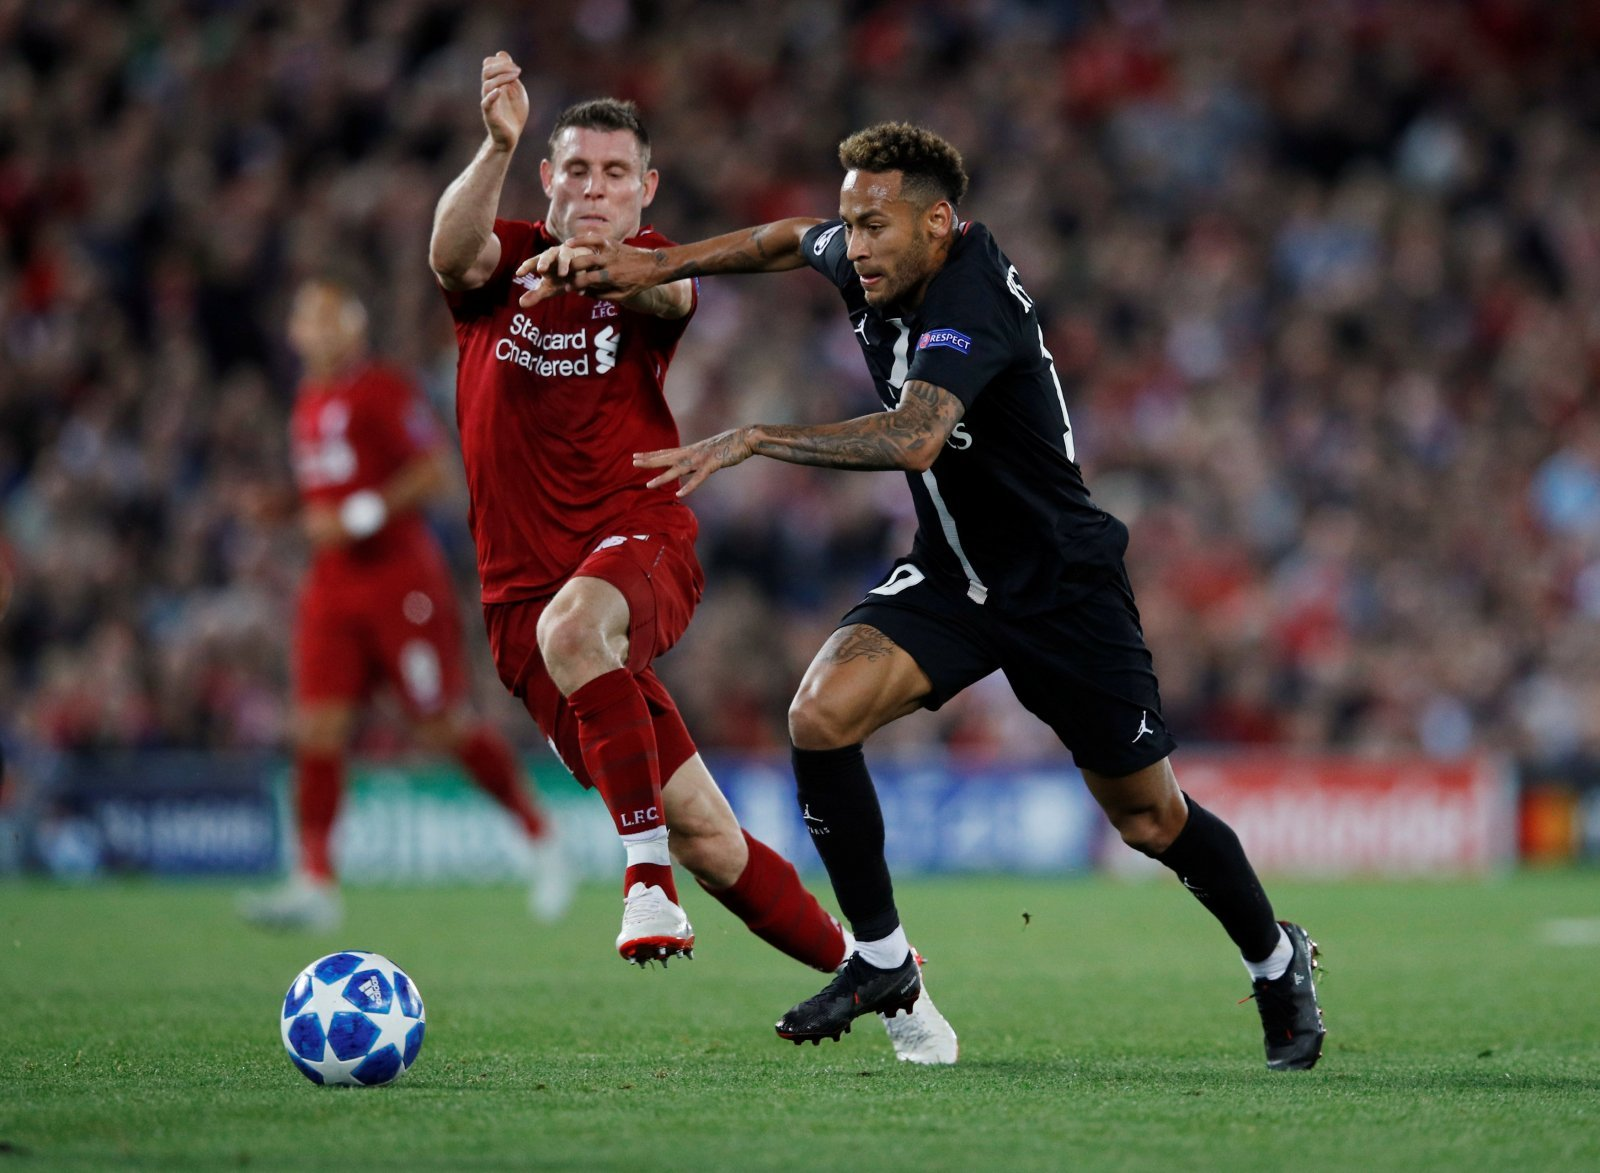 James Milner's tackle on Neymar proves what different worlds Liverpool and PSG are in